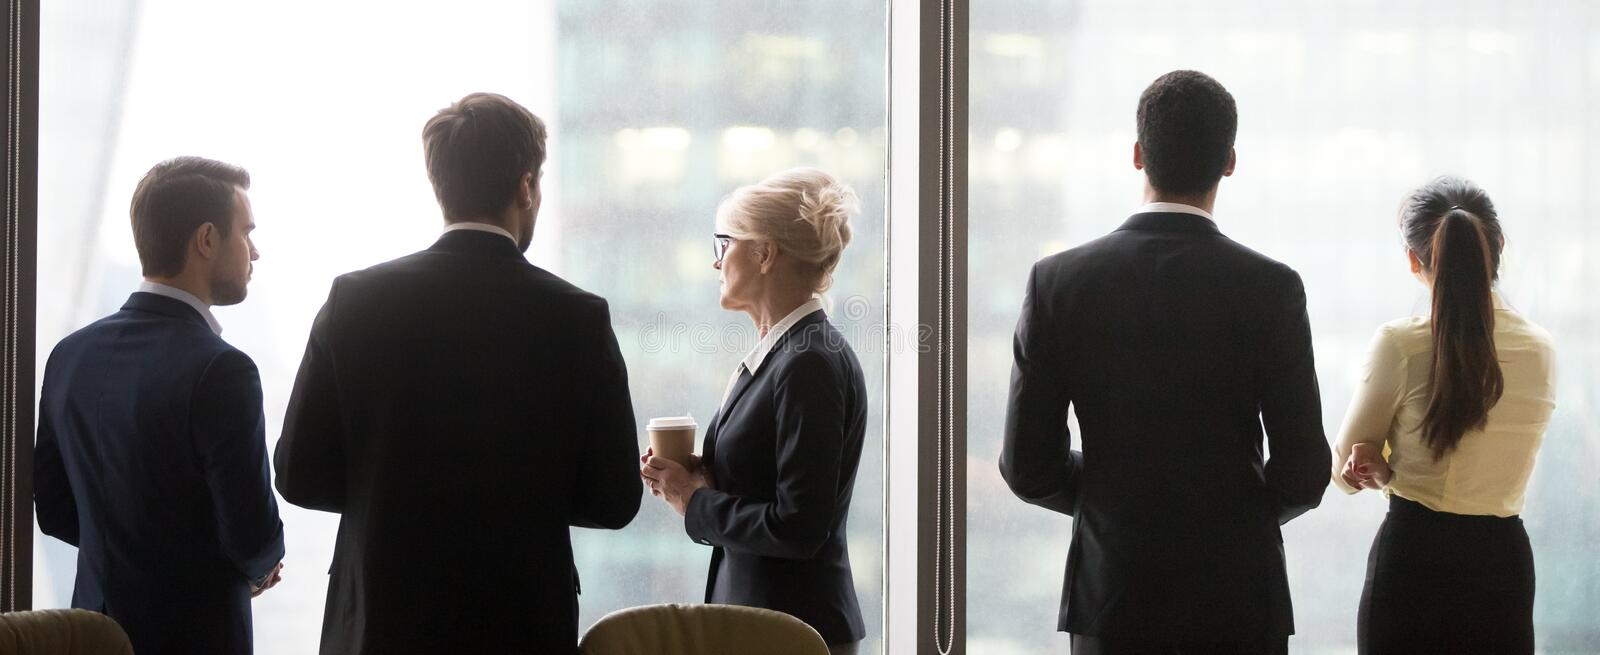 Back view of colleagues standing near window enjoying coffee bre stock photos